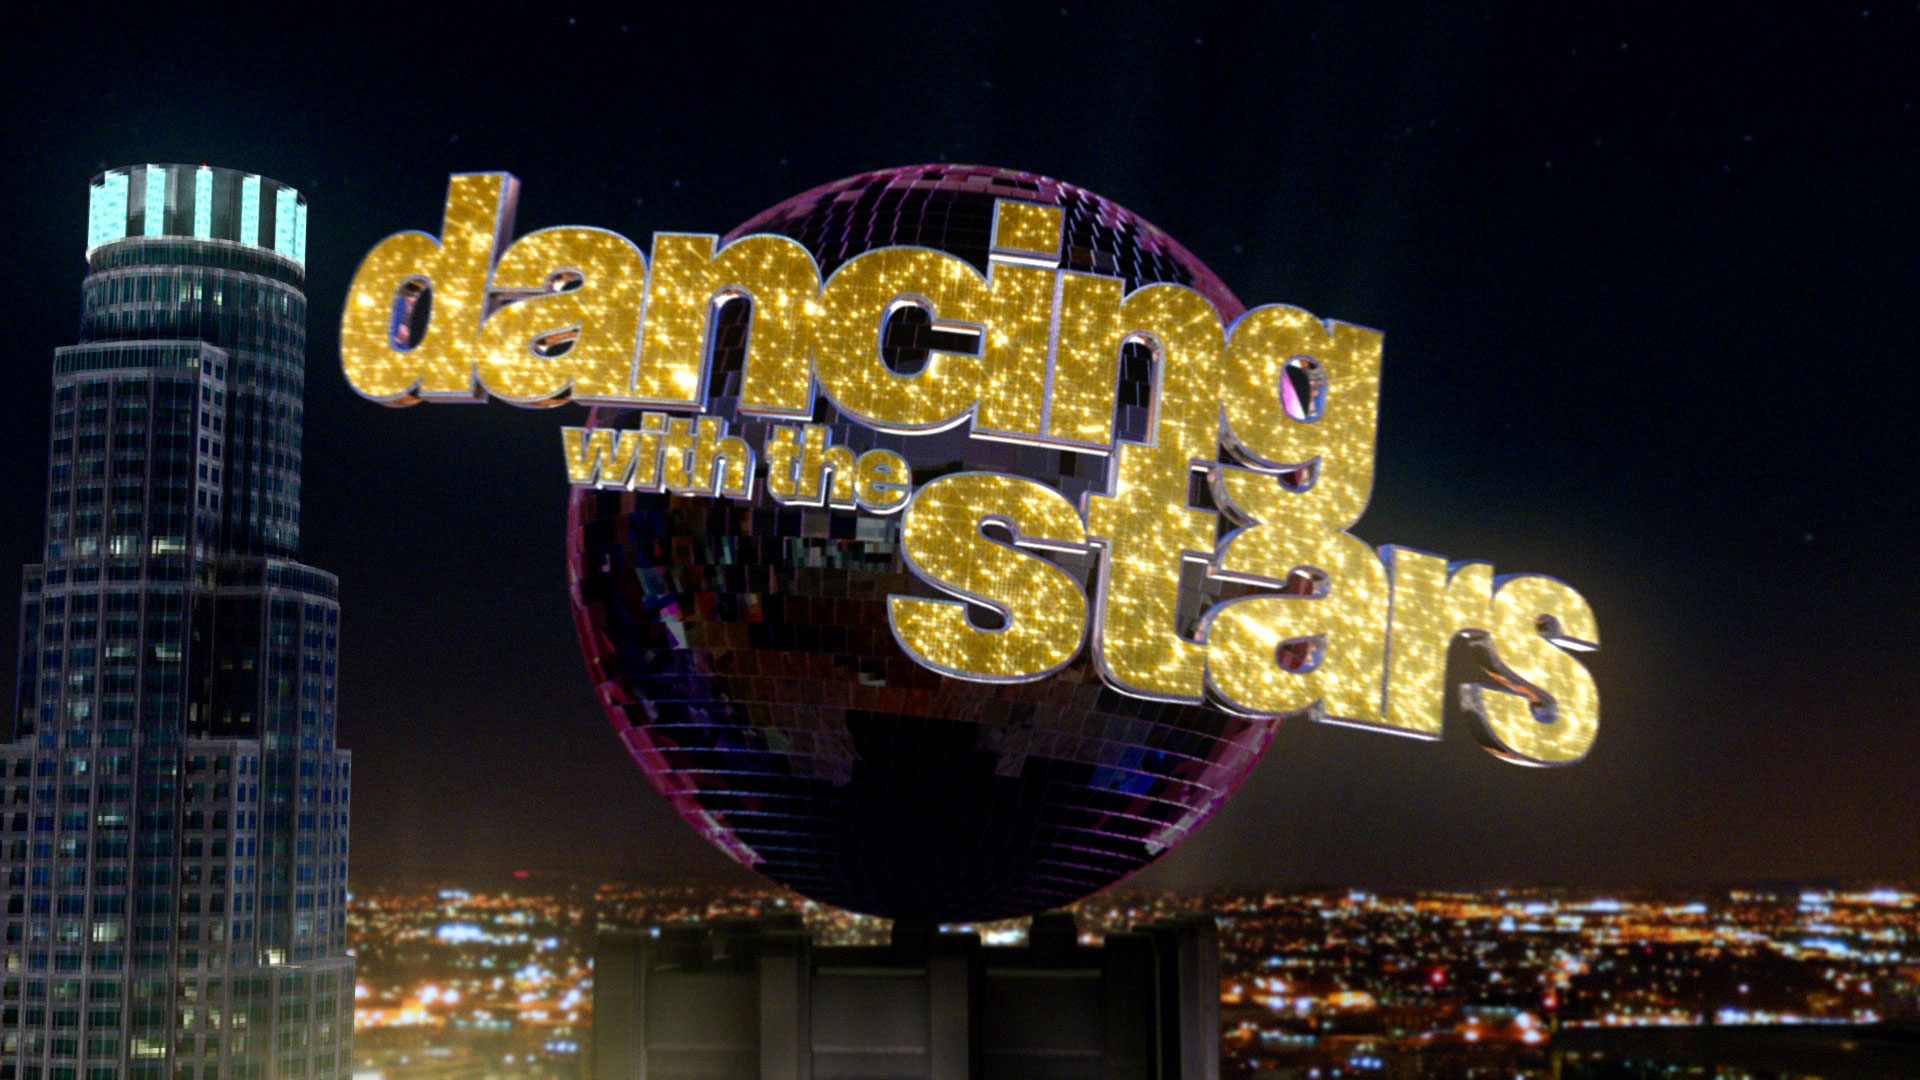 Dancing With The Stars Hd Wallpapers Free Download